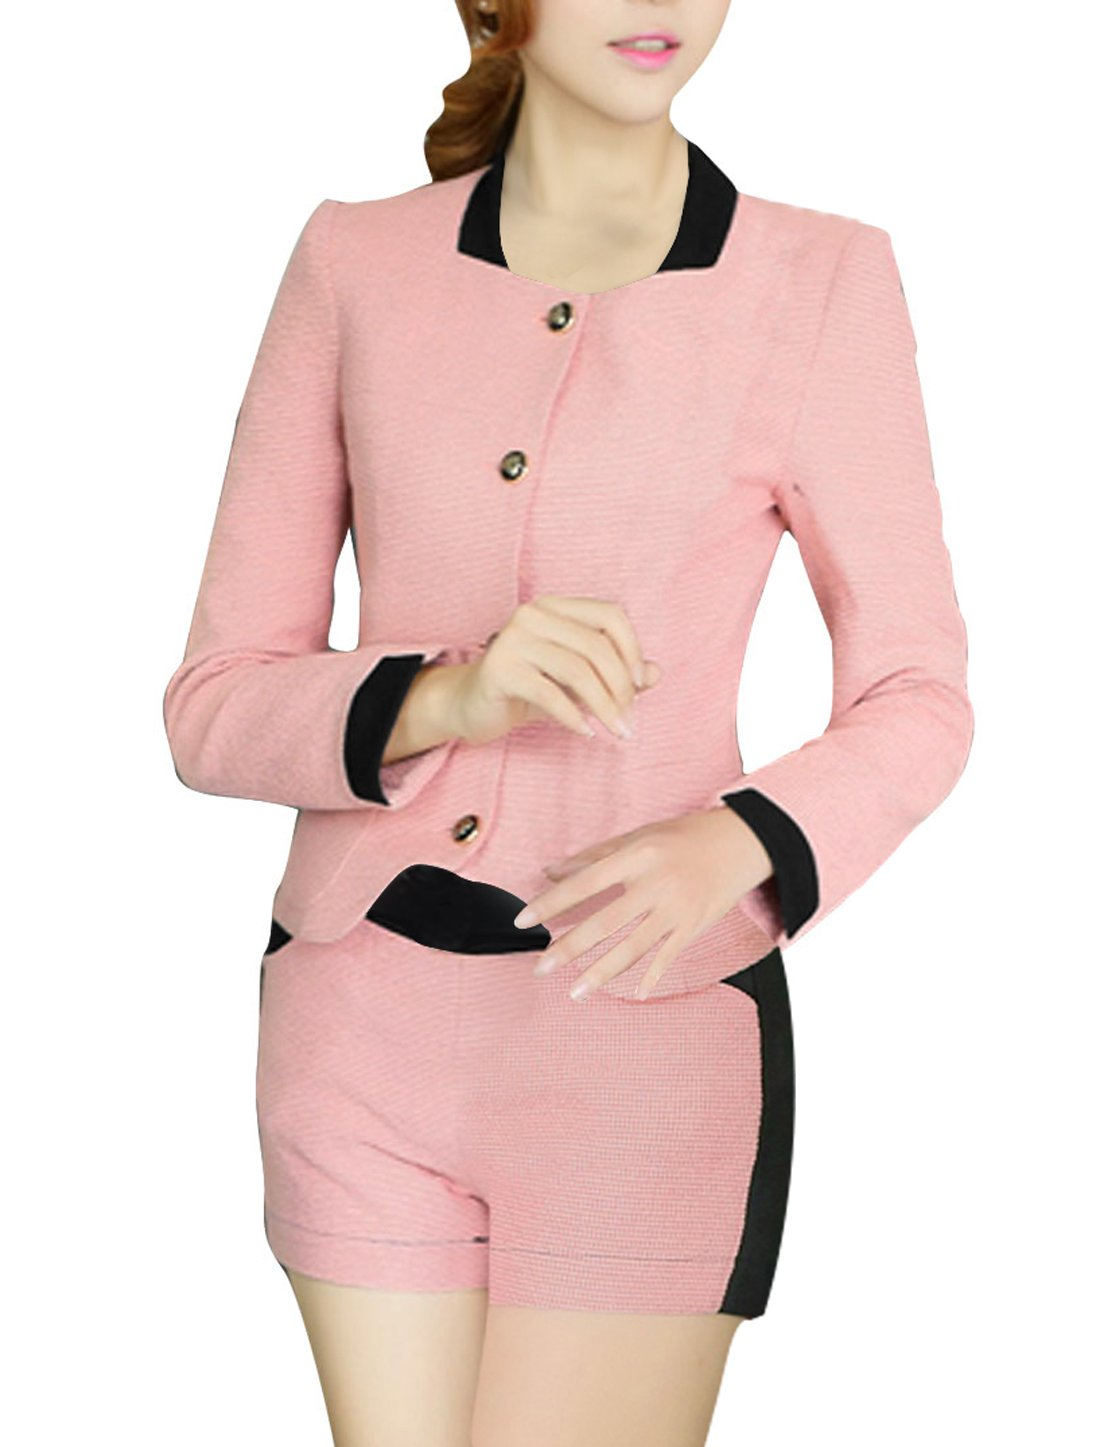 Allegra K Lady Stand Collar Long Sleeve Jacket w Zip Up Shorts Pink XS